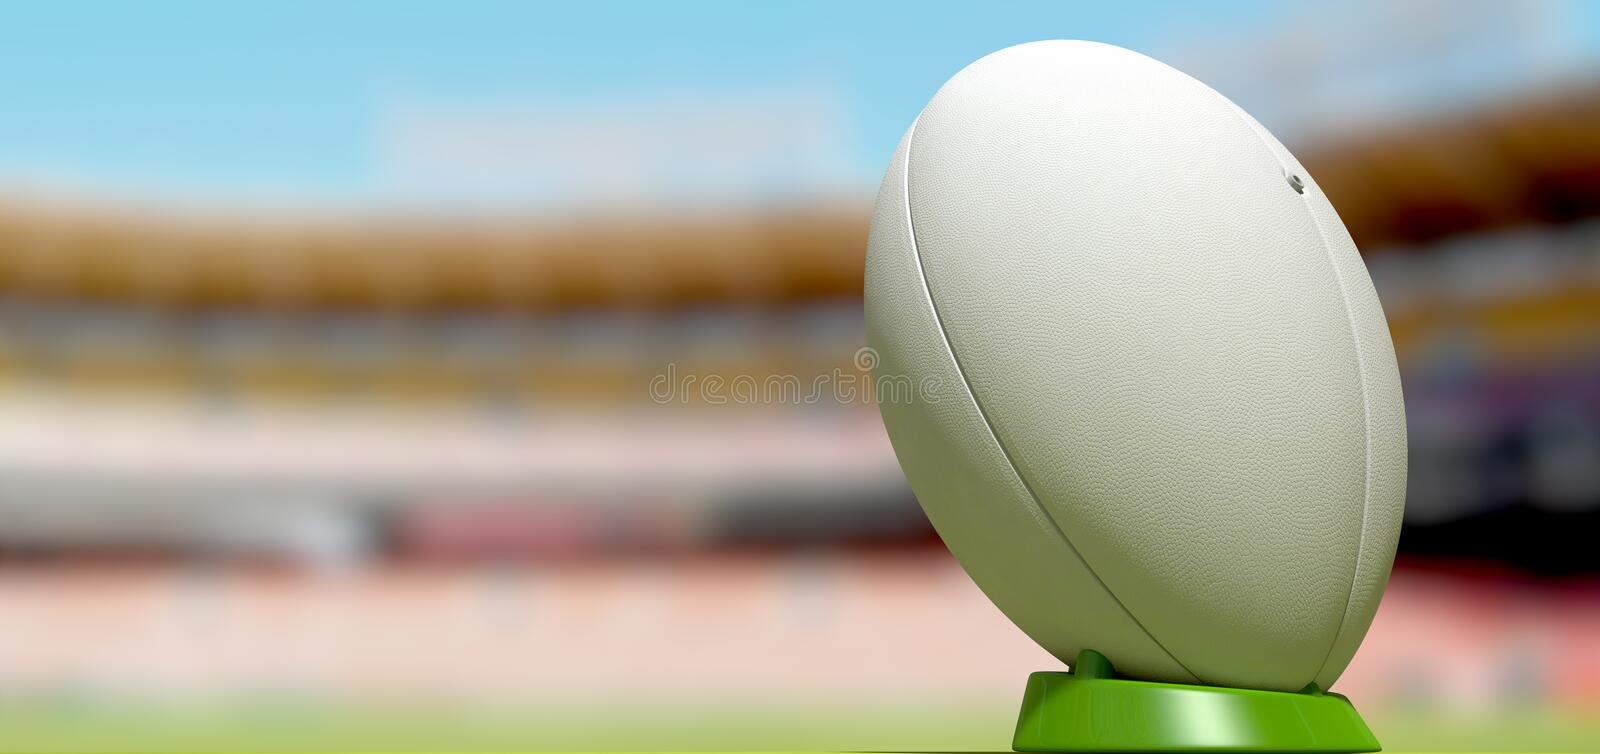 Rugby Ball In A Stadium Daytime. A plain white textured rugby ball on a green kicking tee in a stadium stock photography